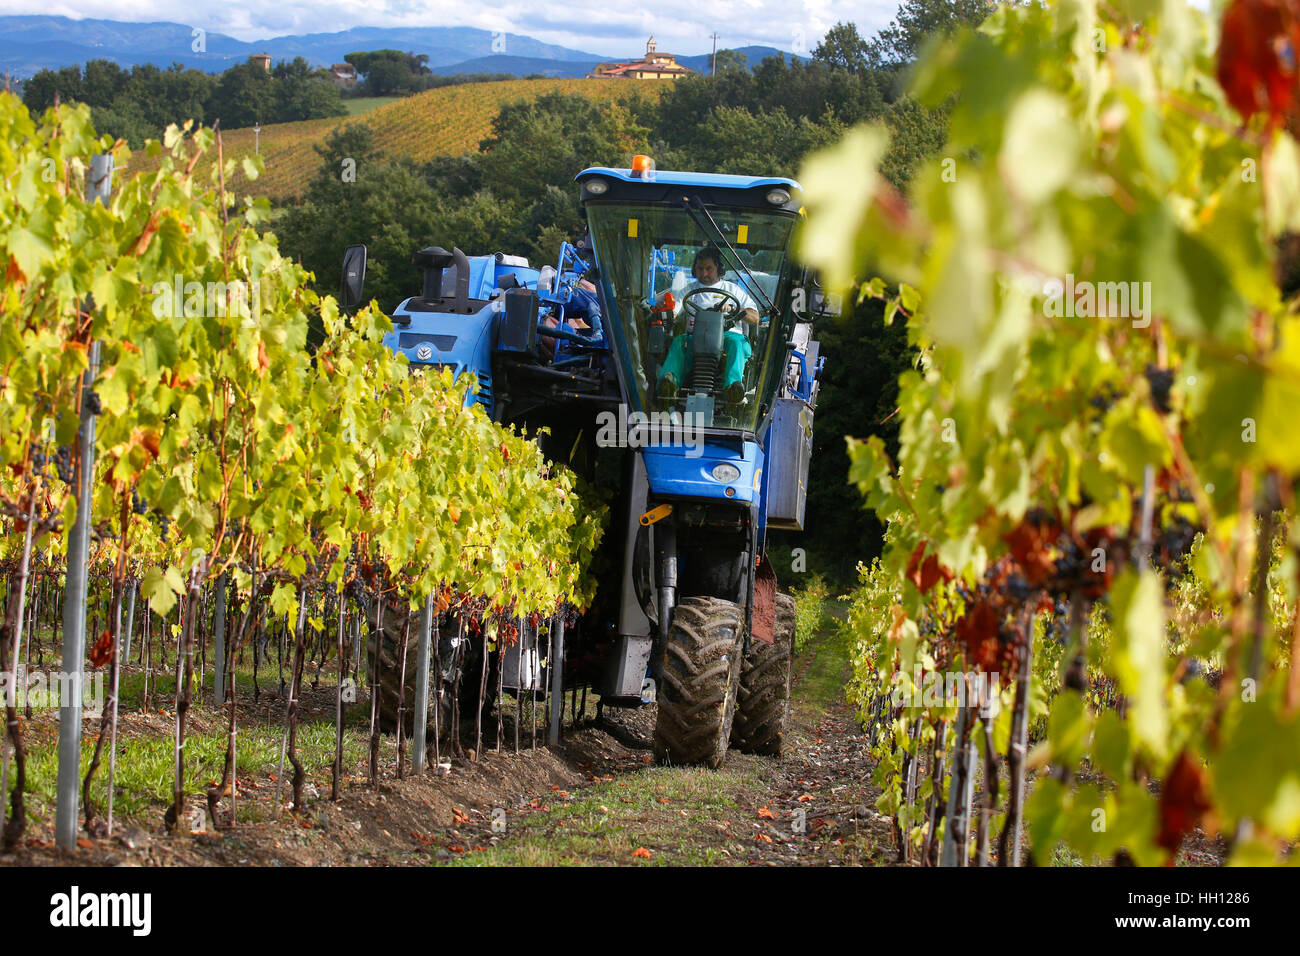 A New Holland Grape Harvester at work in the around San Casciano in Val di Pesa in Tuscany, Italy. - Stock Image